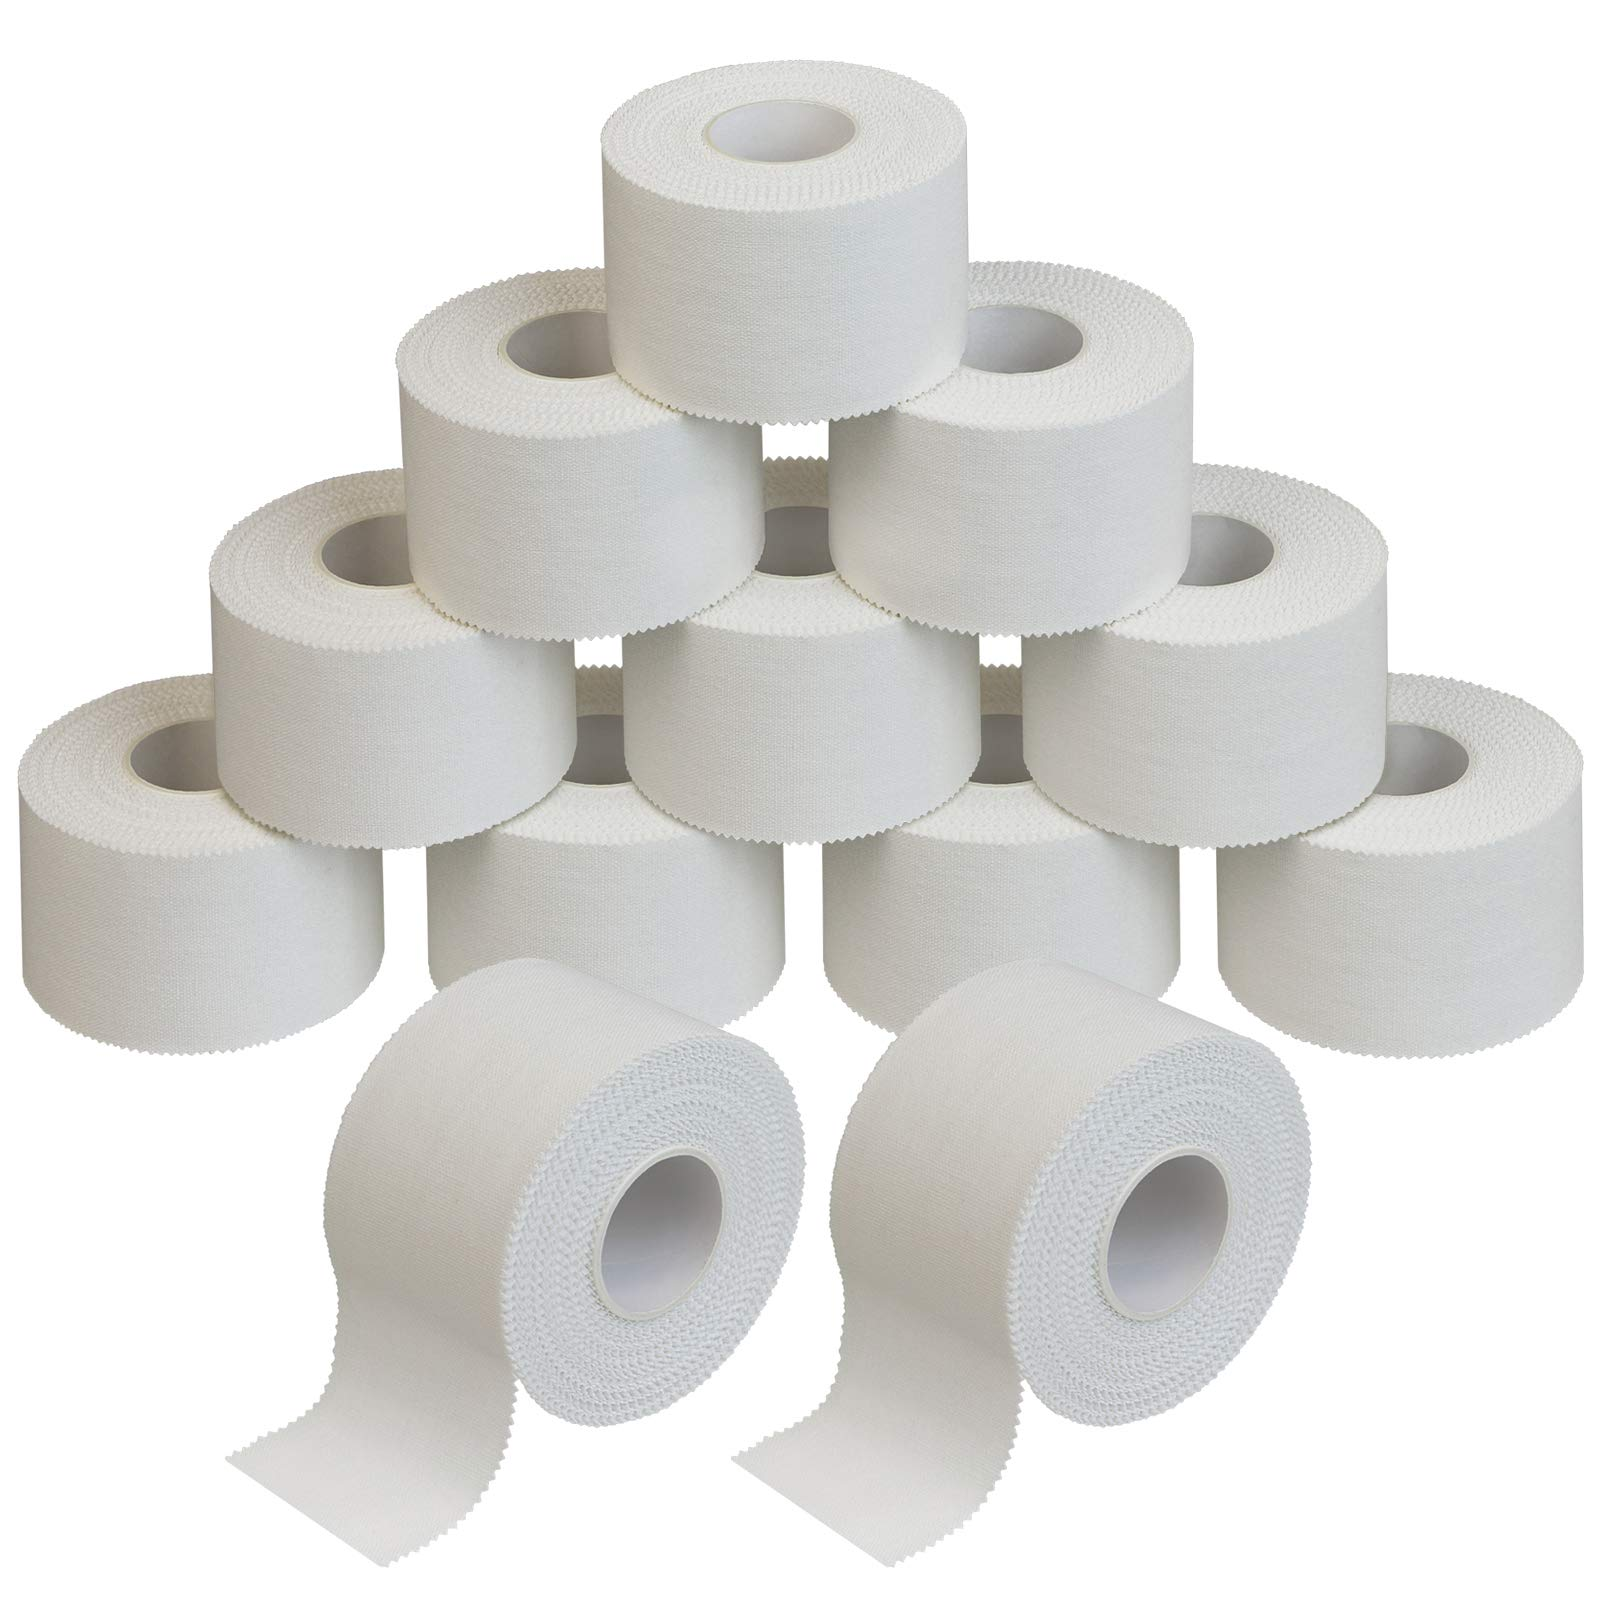 ALPIDEX 12 x Sports Tape 10 m x 3.8 cm white zinc oxide tape finger tape